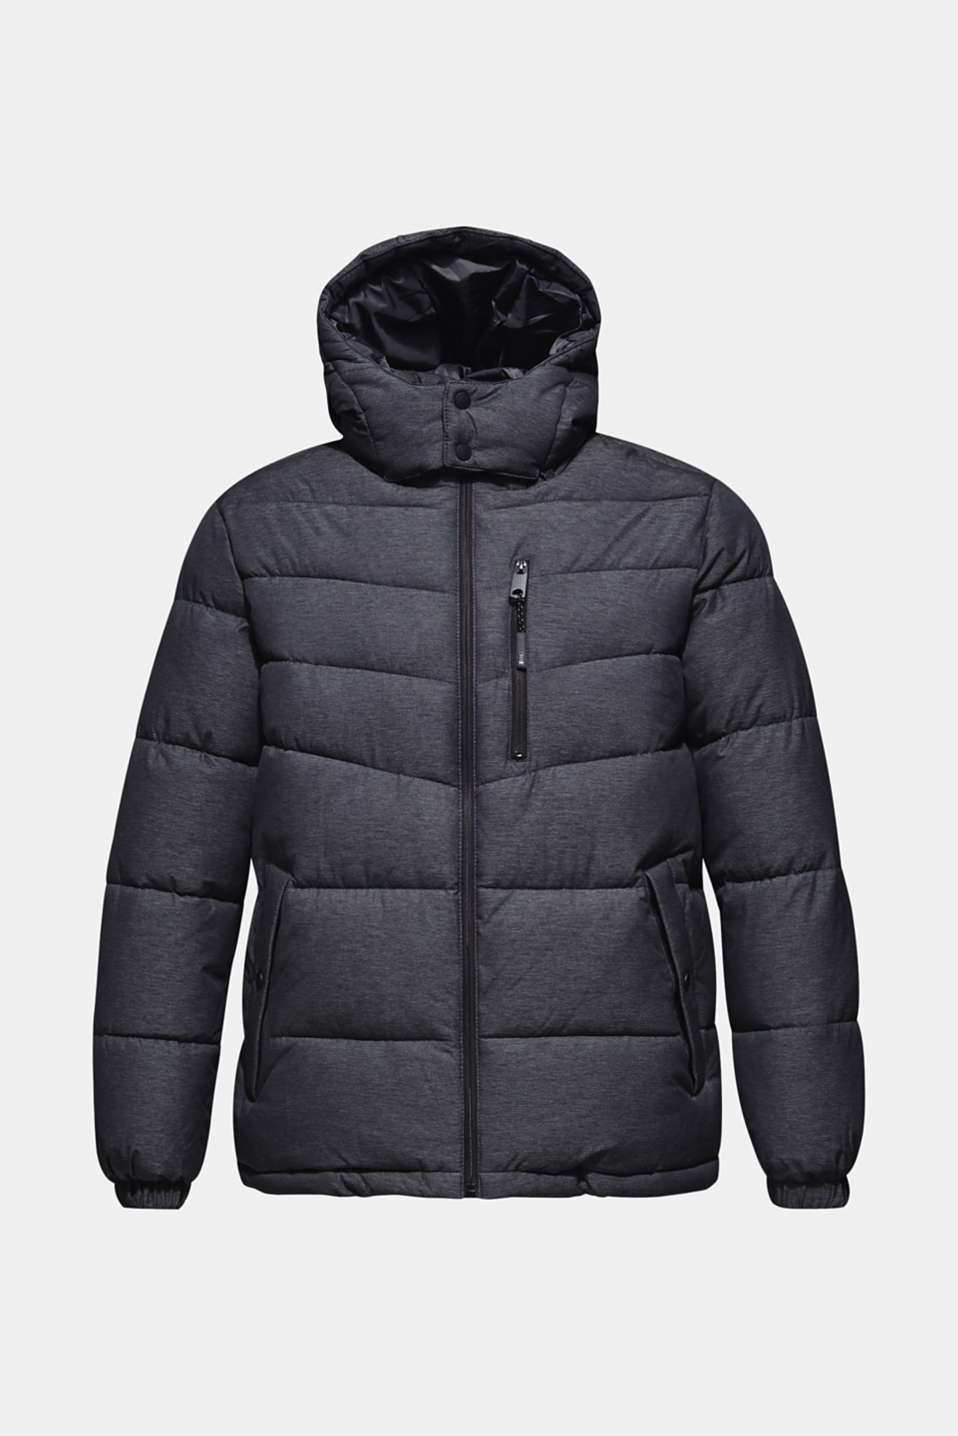 Quilted jacket with an adjustable hood, DARK GREY, detail image number 6